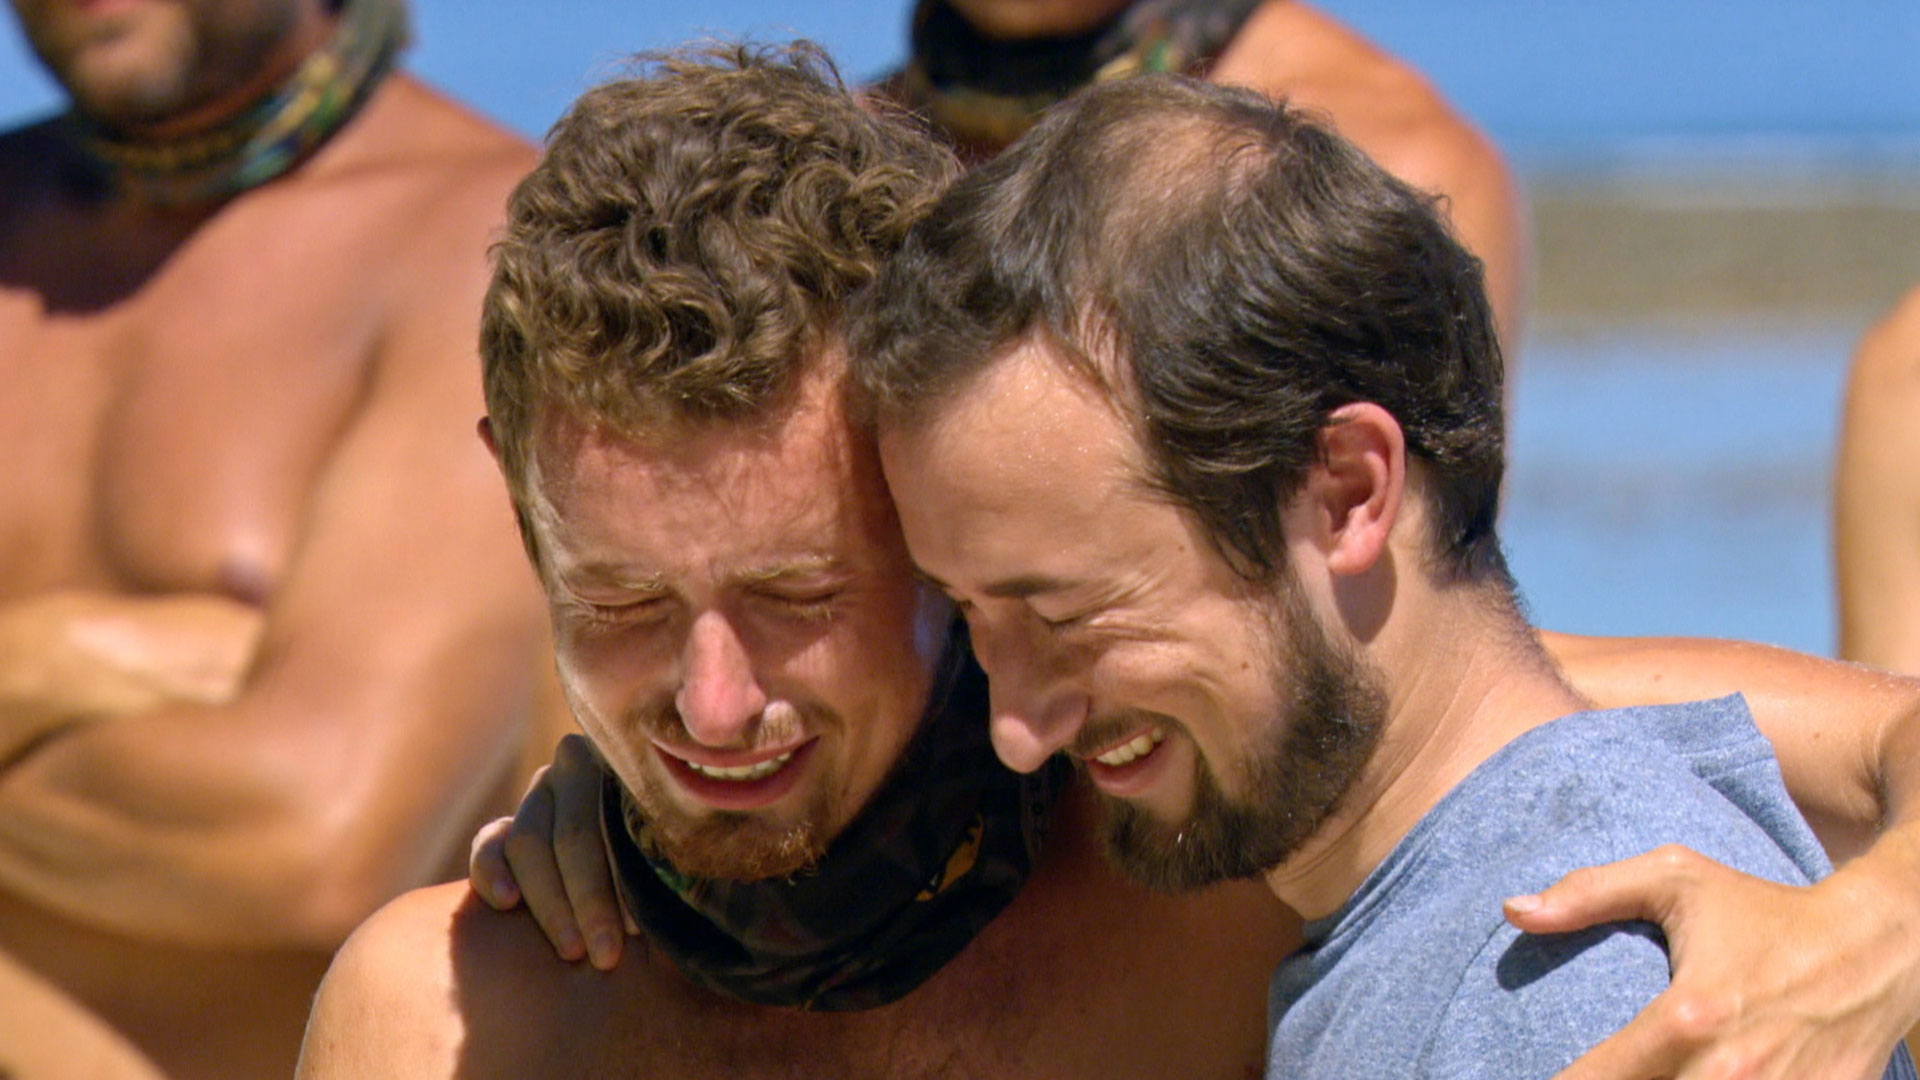 Season 33: Adam Klein is reunited with his brother.